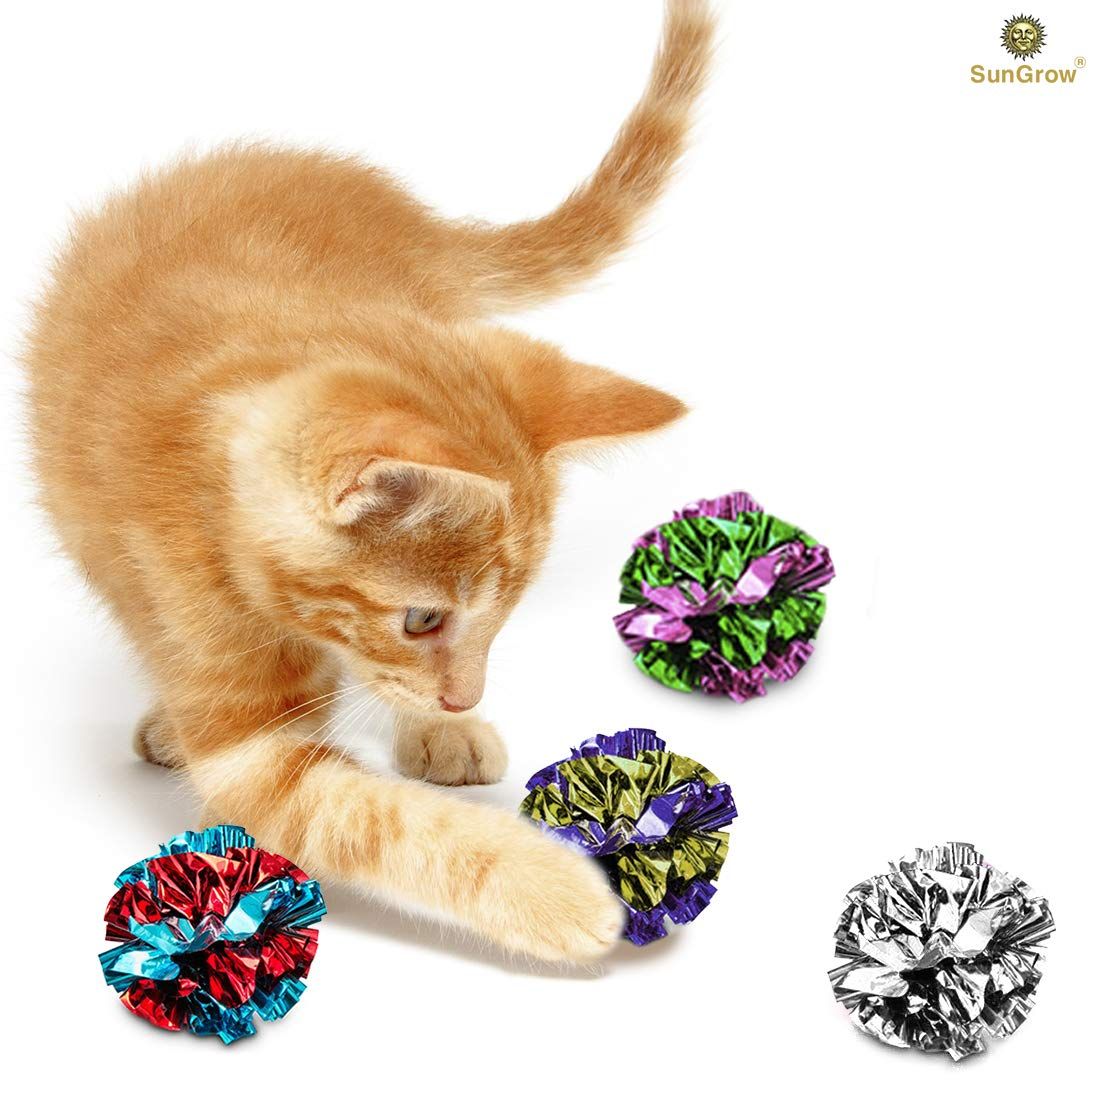 Shiny /& Stress Buster Toy Interesting Crinkly Sounds Soft 12 Mylar Crinkle Balls for Cats Safe for Your Kitty Hours of Entertainment Lightweight /& Fun Toy for Both Kittens /& Adult Cats